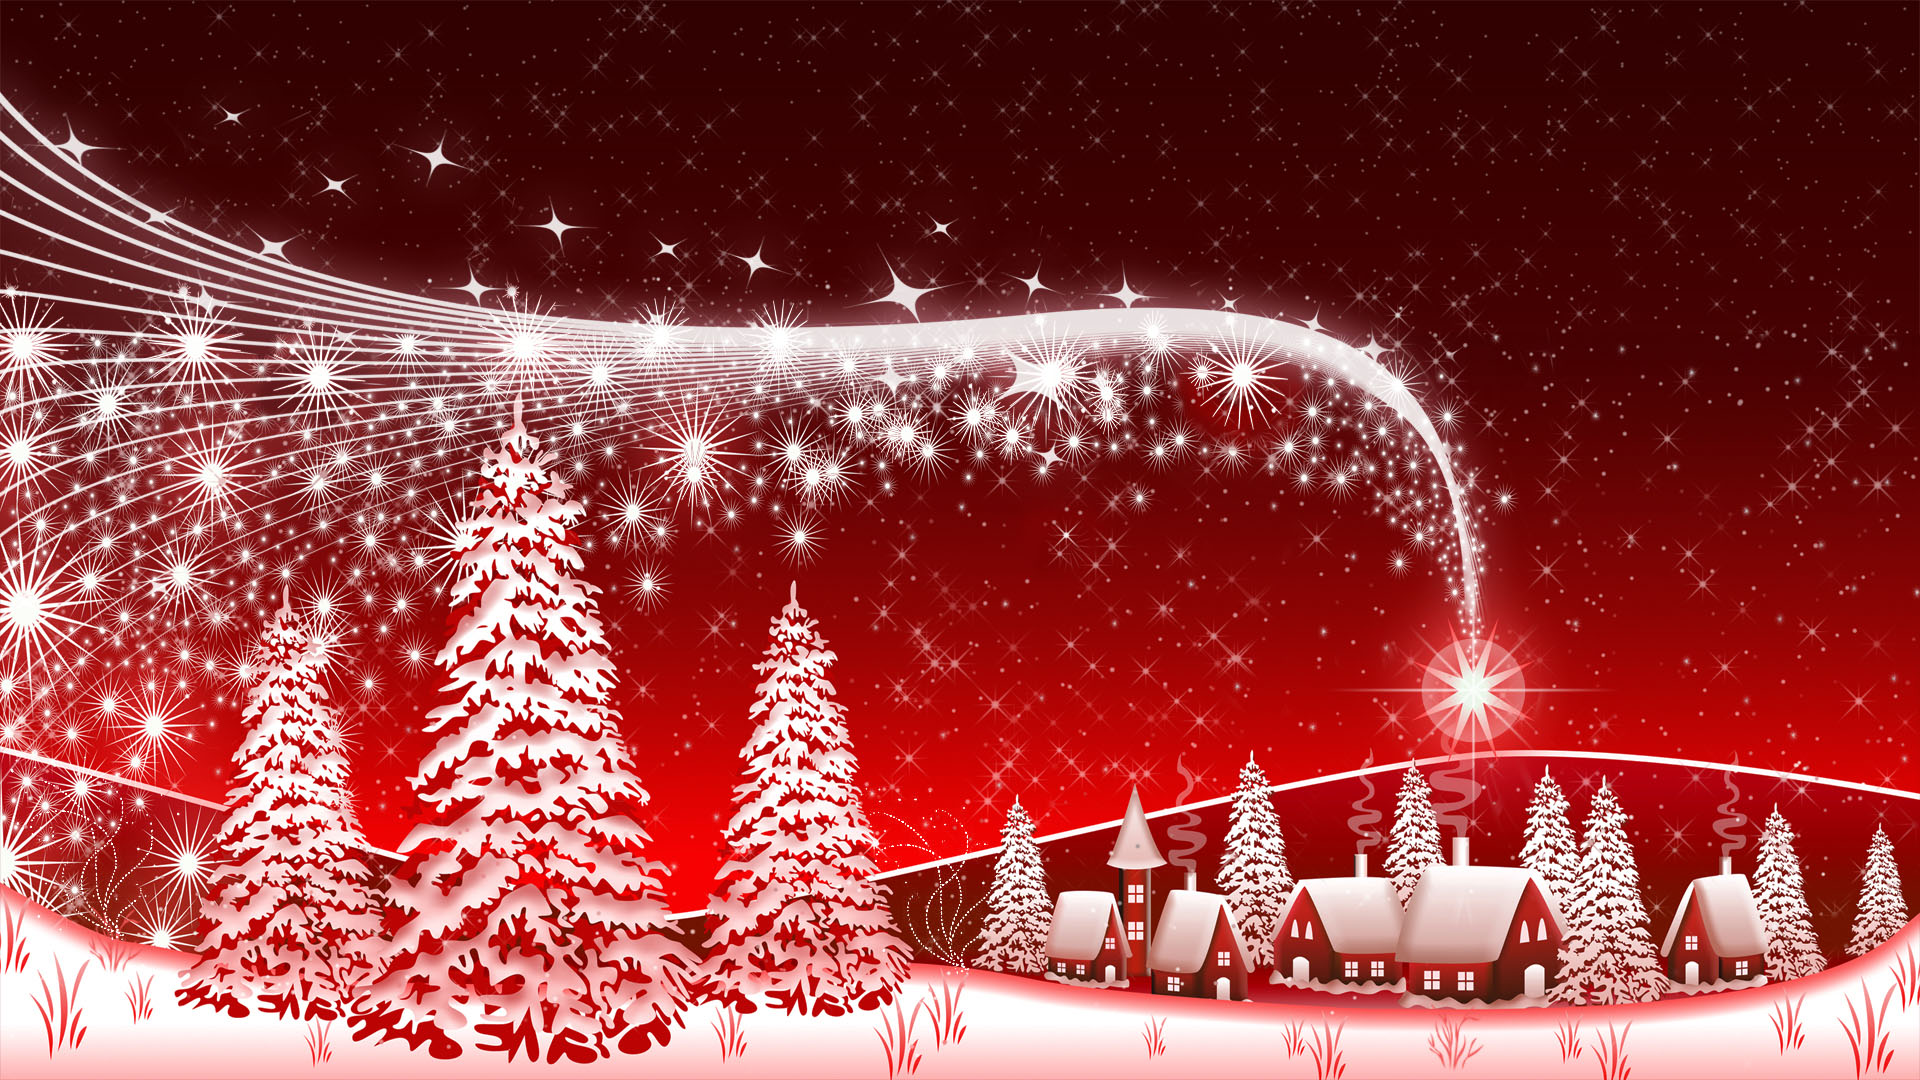 Winter Christmas Wallpapers Hd Resolution Is Cool Wallpapers